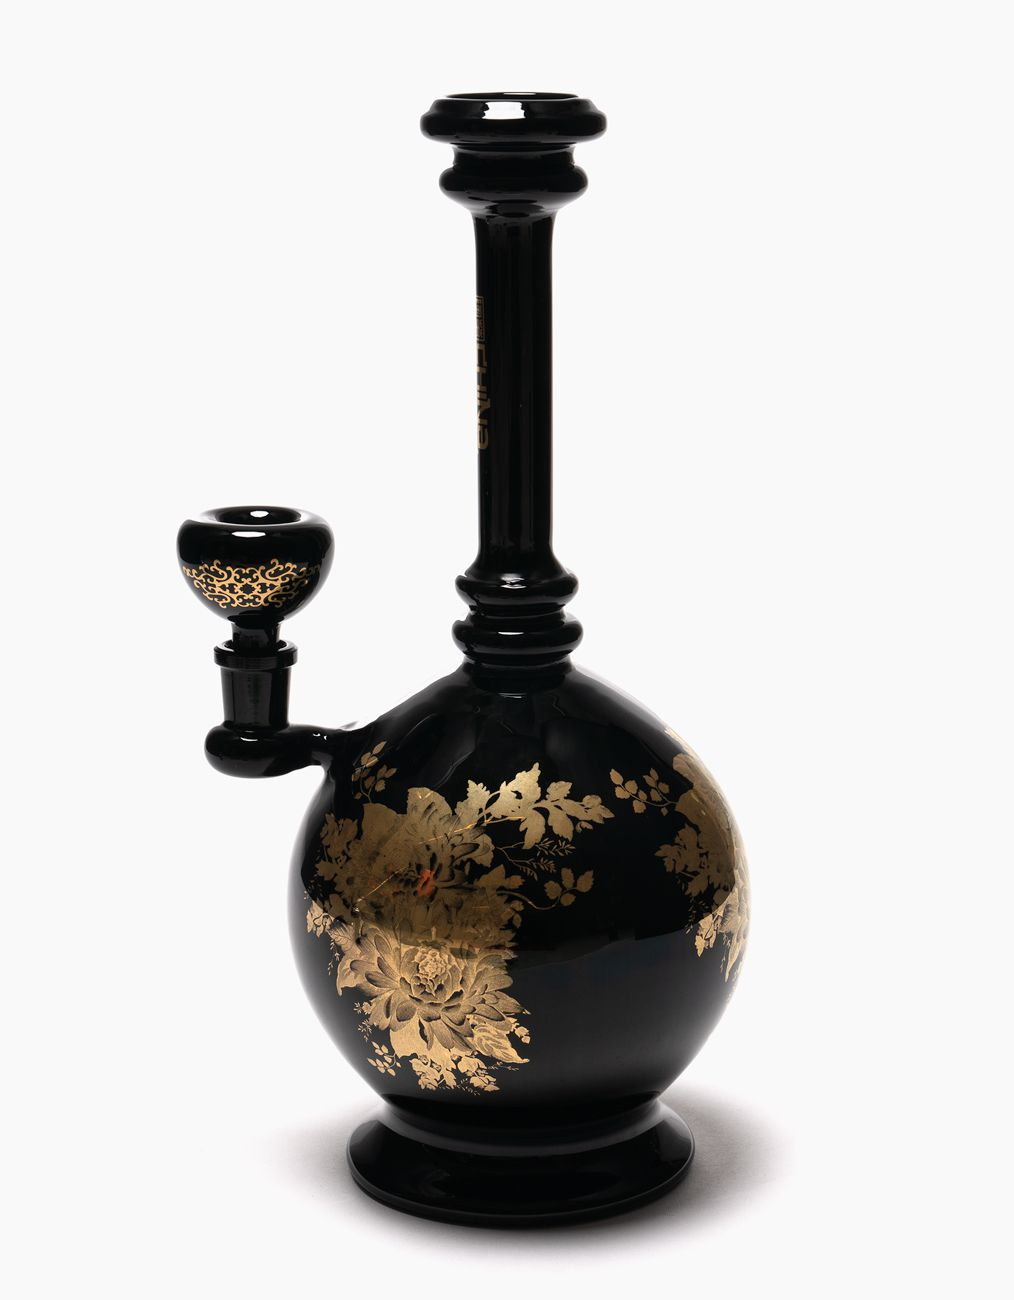 Bong & pipe buying guide best ceramic